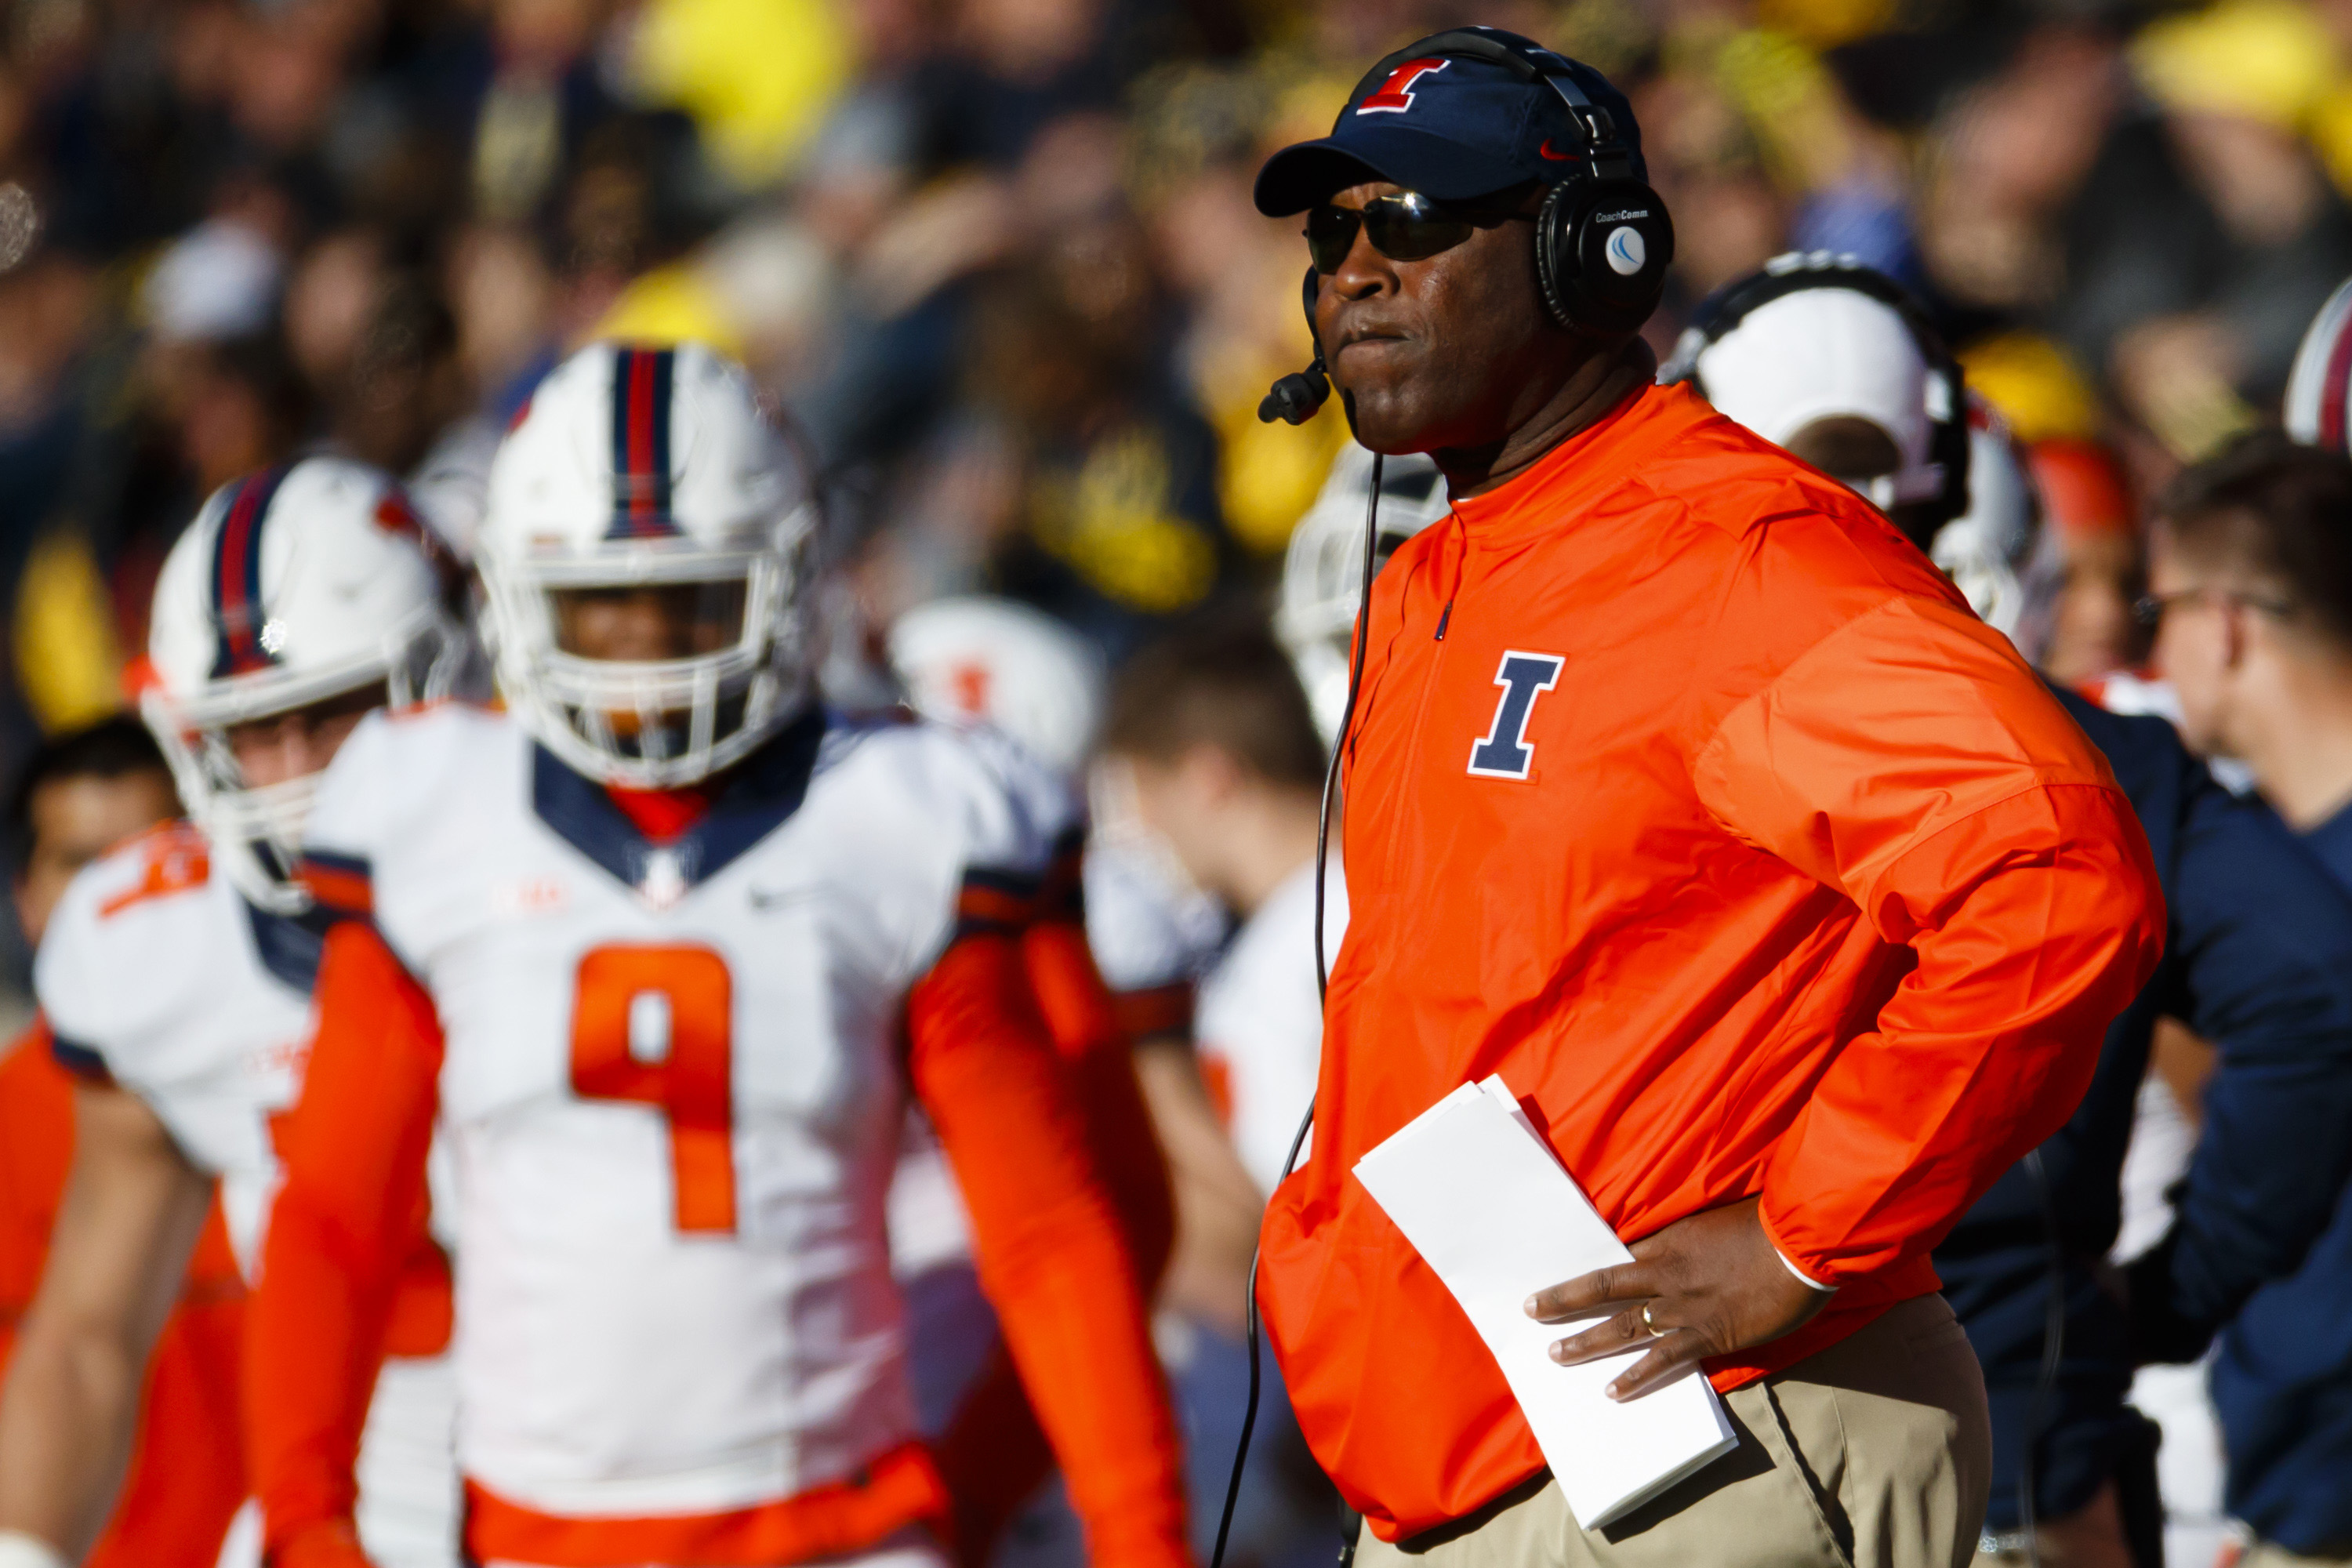 Illinois Football: Most recent offers focus on defensive backs